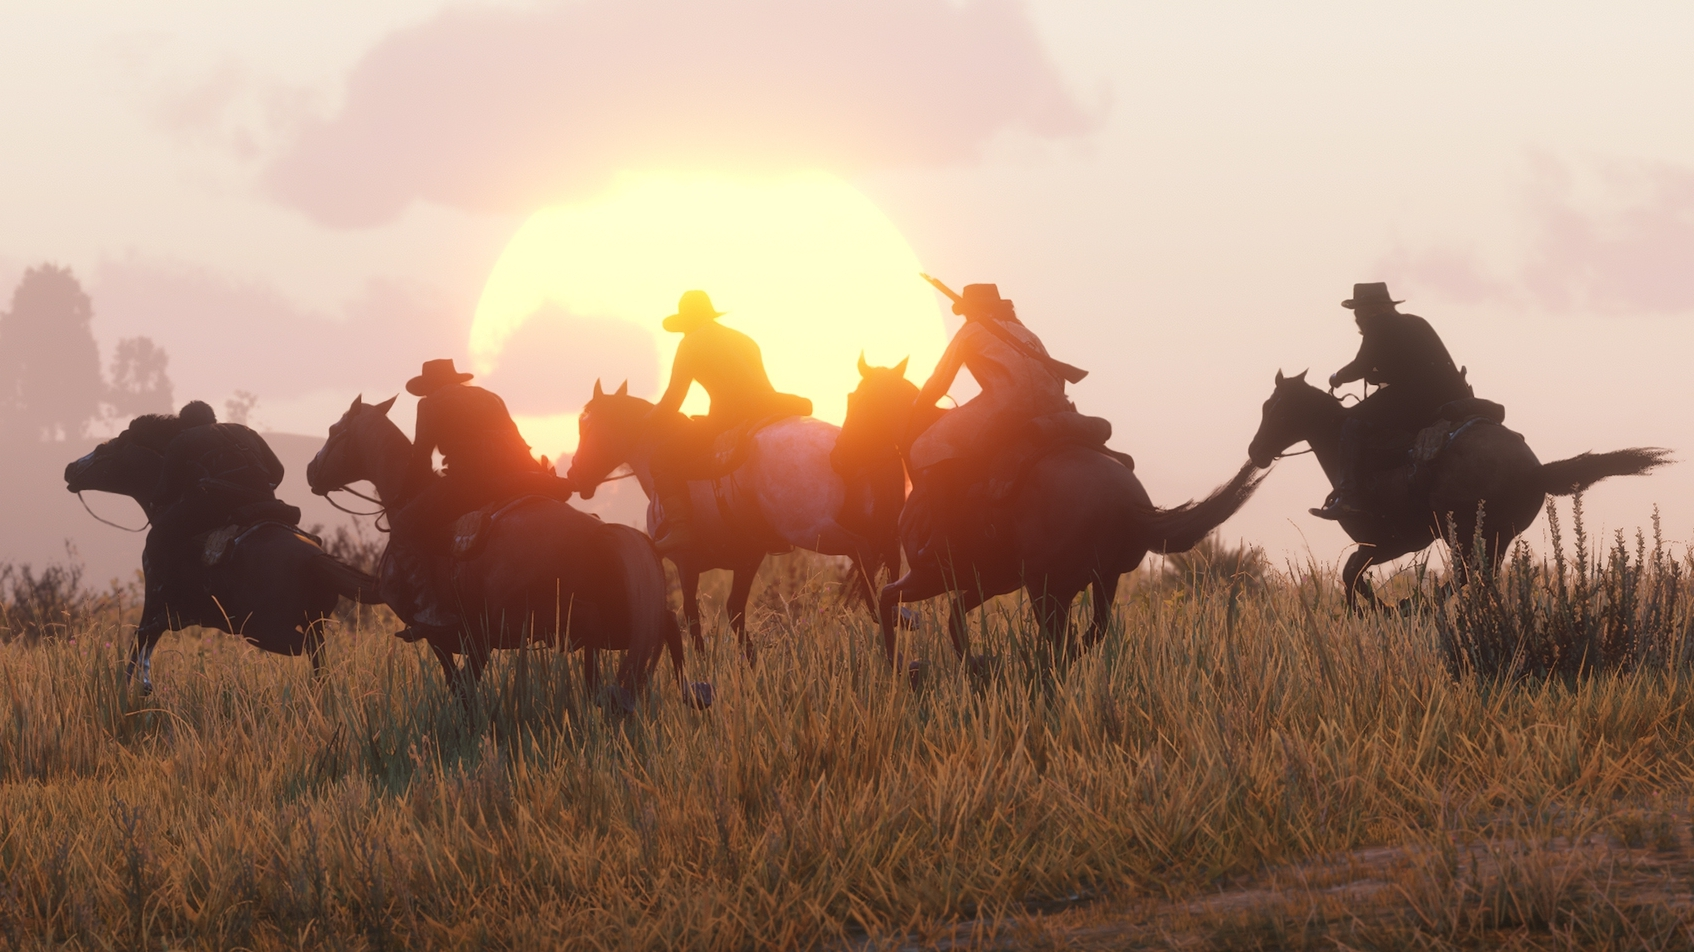 Rockstar warns players Red Dead Online beta progress may not be permanent •  Eurogamer.net 92fb35a26d